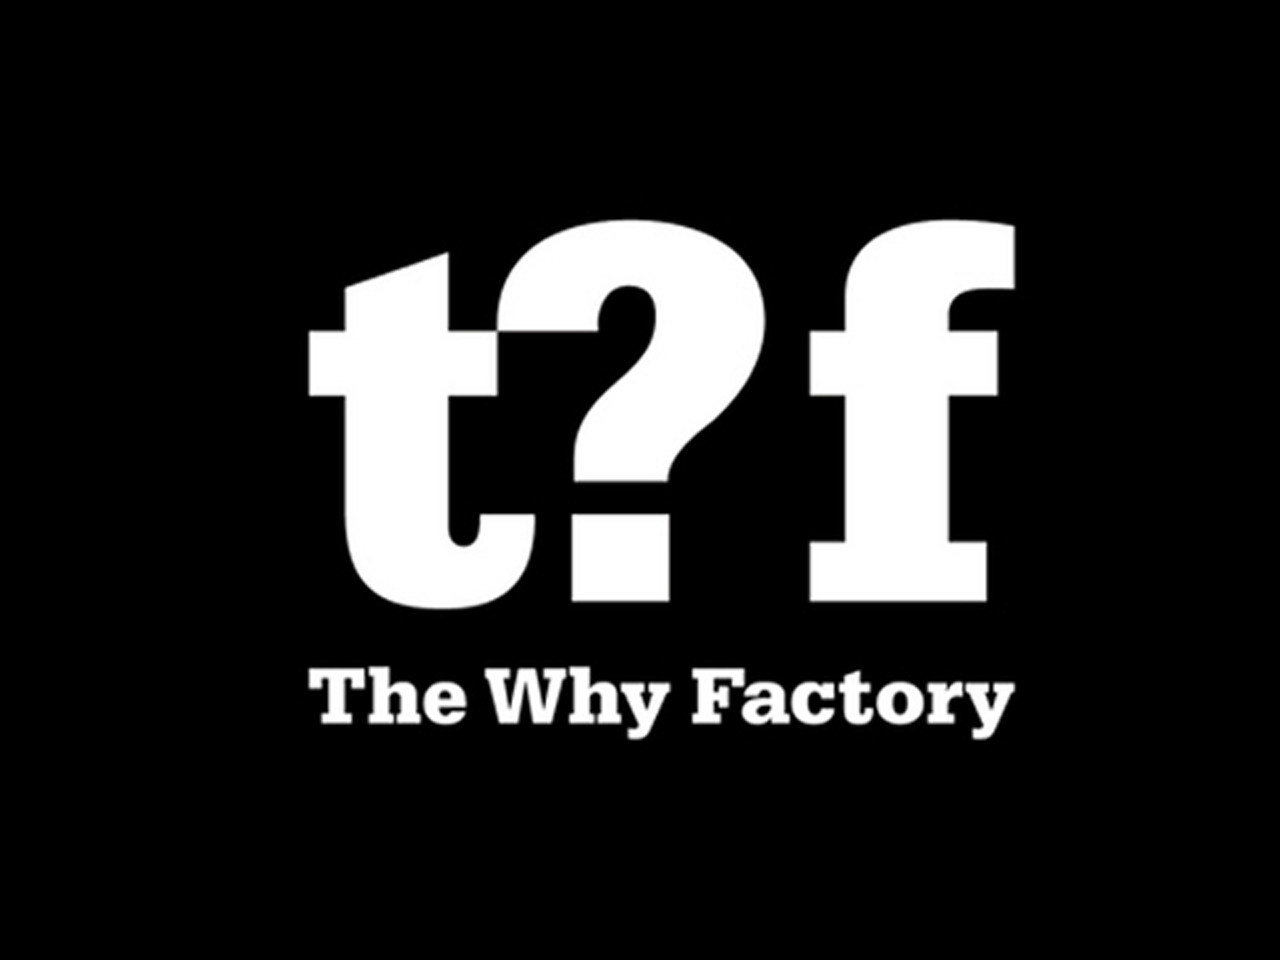 The Why Factory, MVRDV and TU Delft's think tank on future cities, Launches its New Website